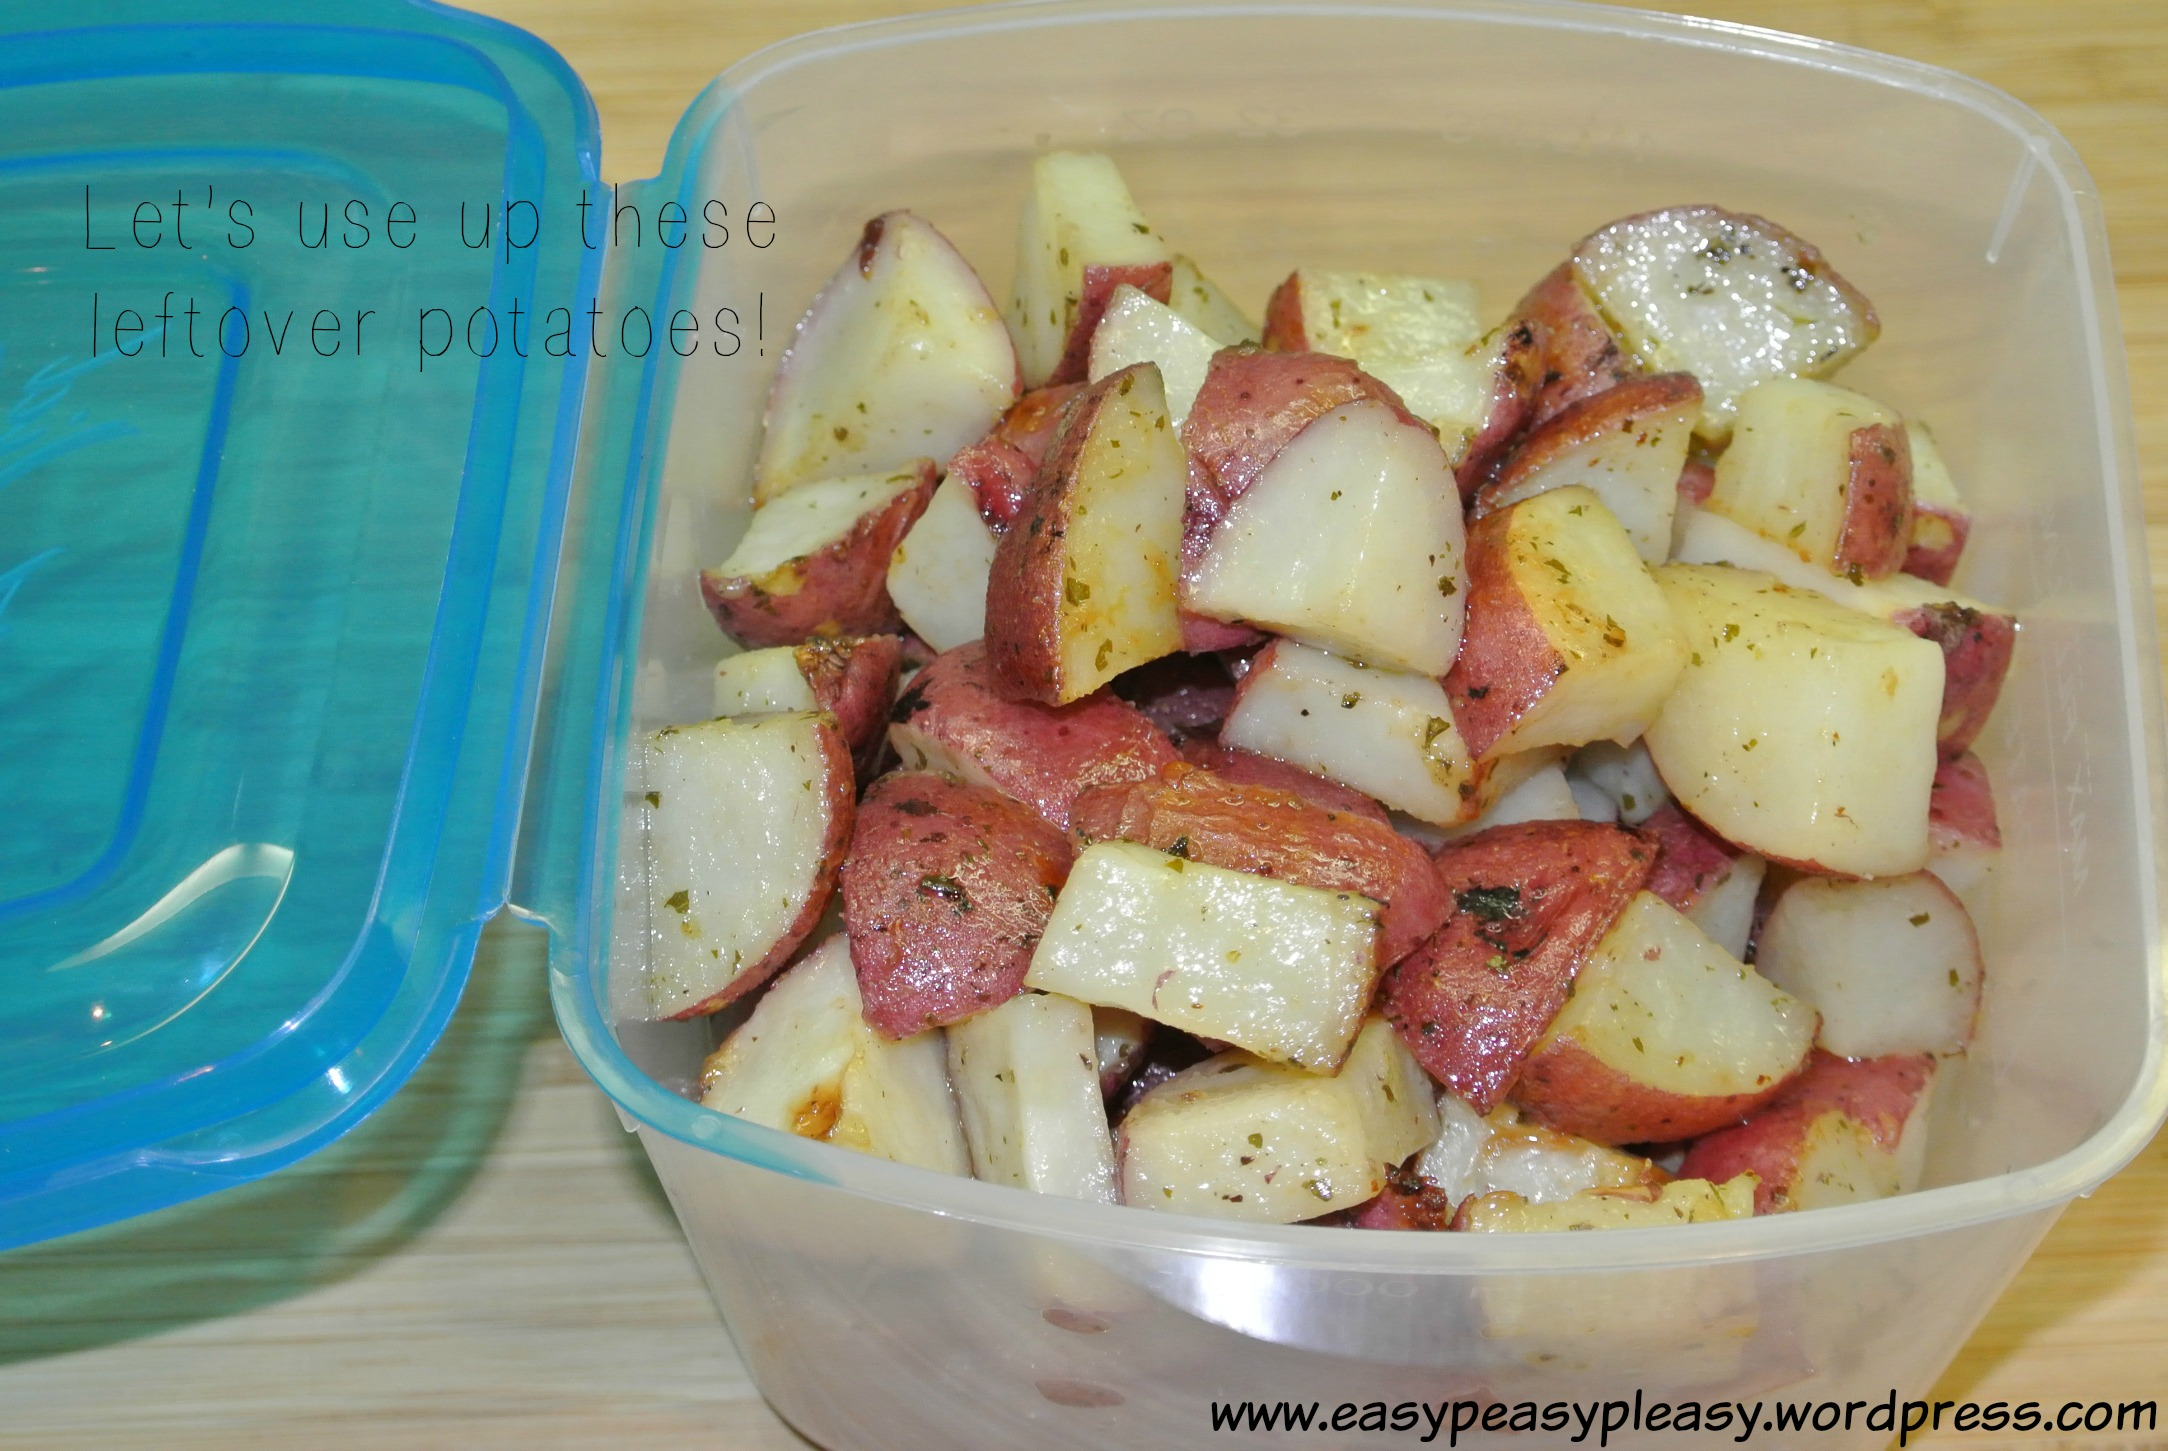 How to use up leftover potatoes as a double duty recipe idea at https://easypeasypleasy.com